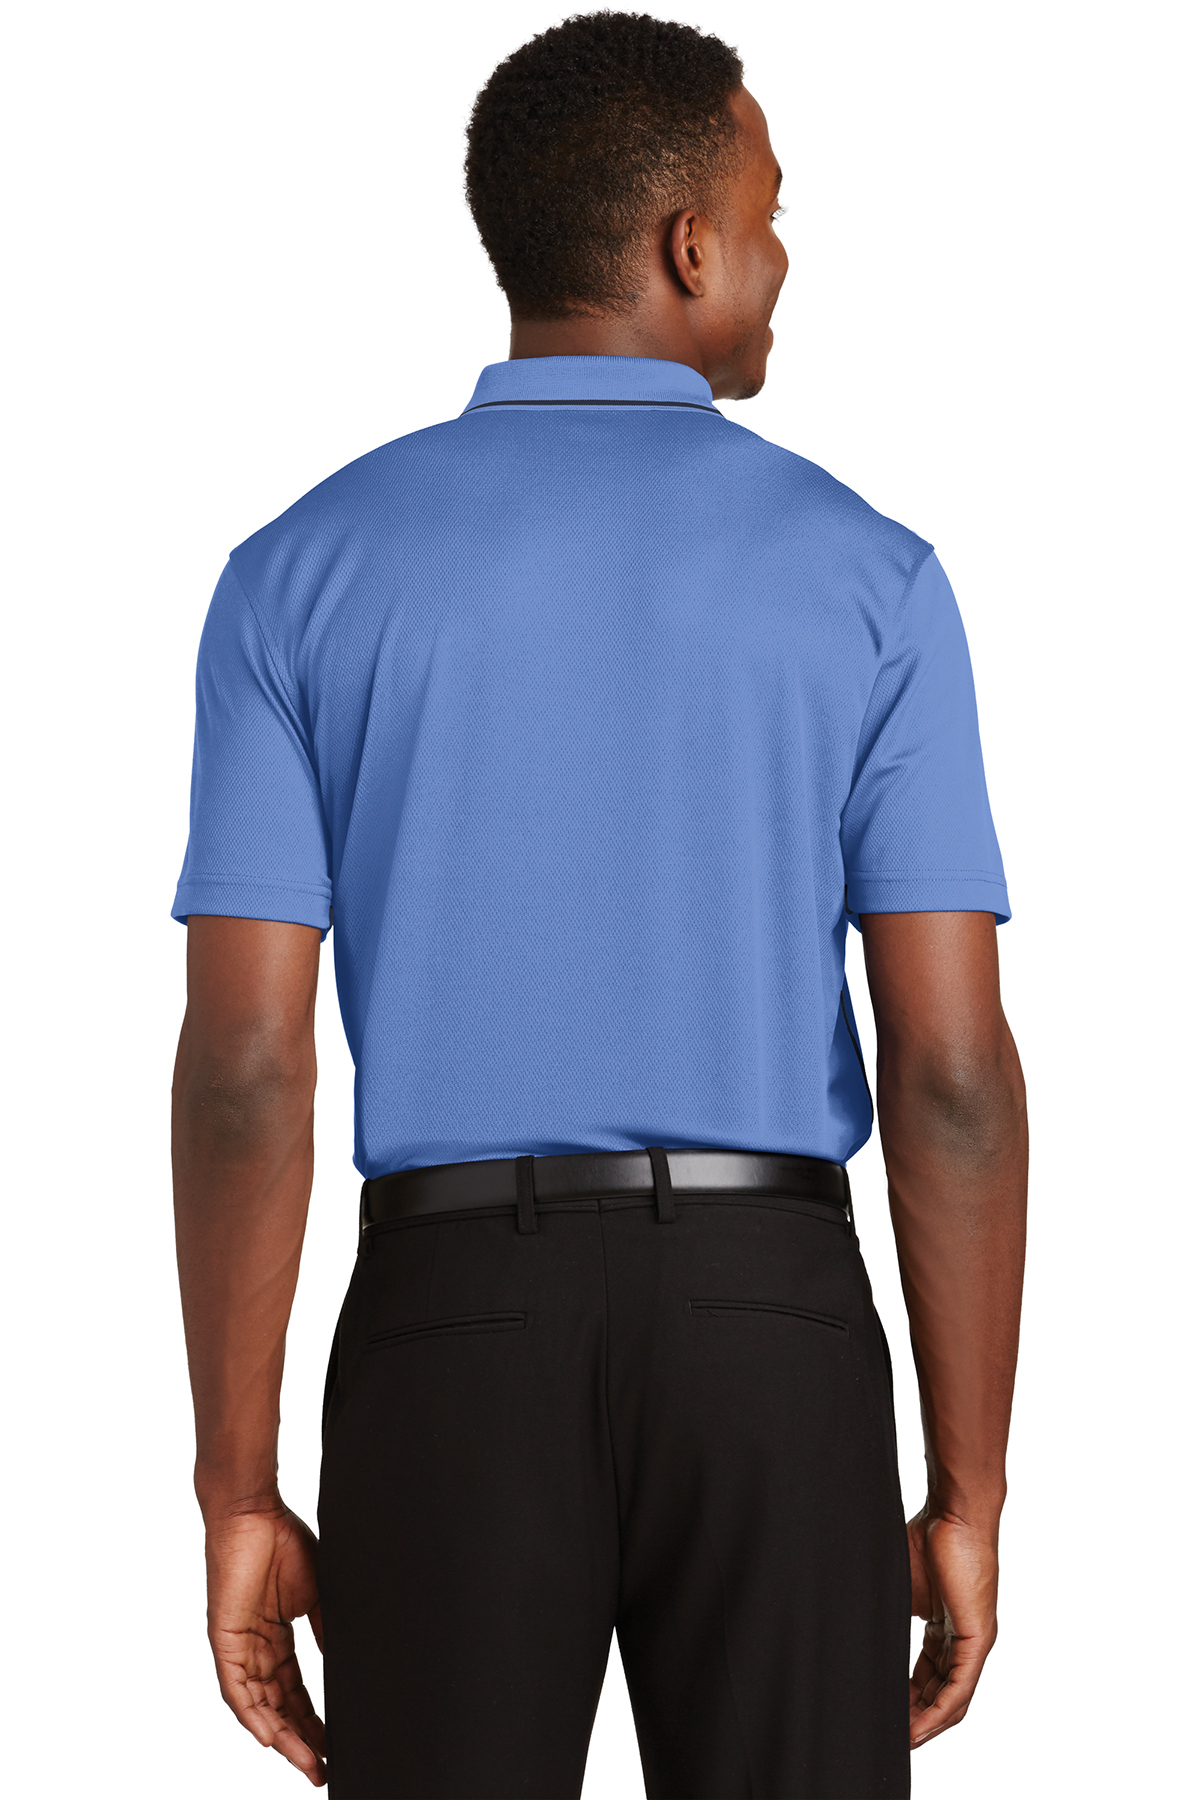 a3a470fc23 ... Sport-Tek® Dri-Mesh® Polo with Tipped Collar and Piping. A maximum of 8  logos have been uploaded. Please remove a logo from My Logos to continue